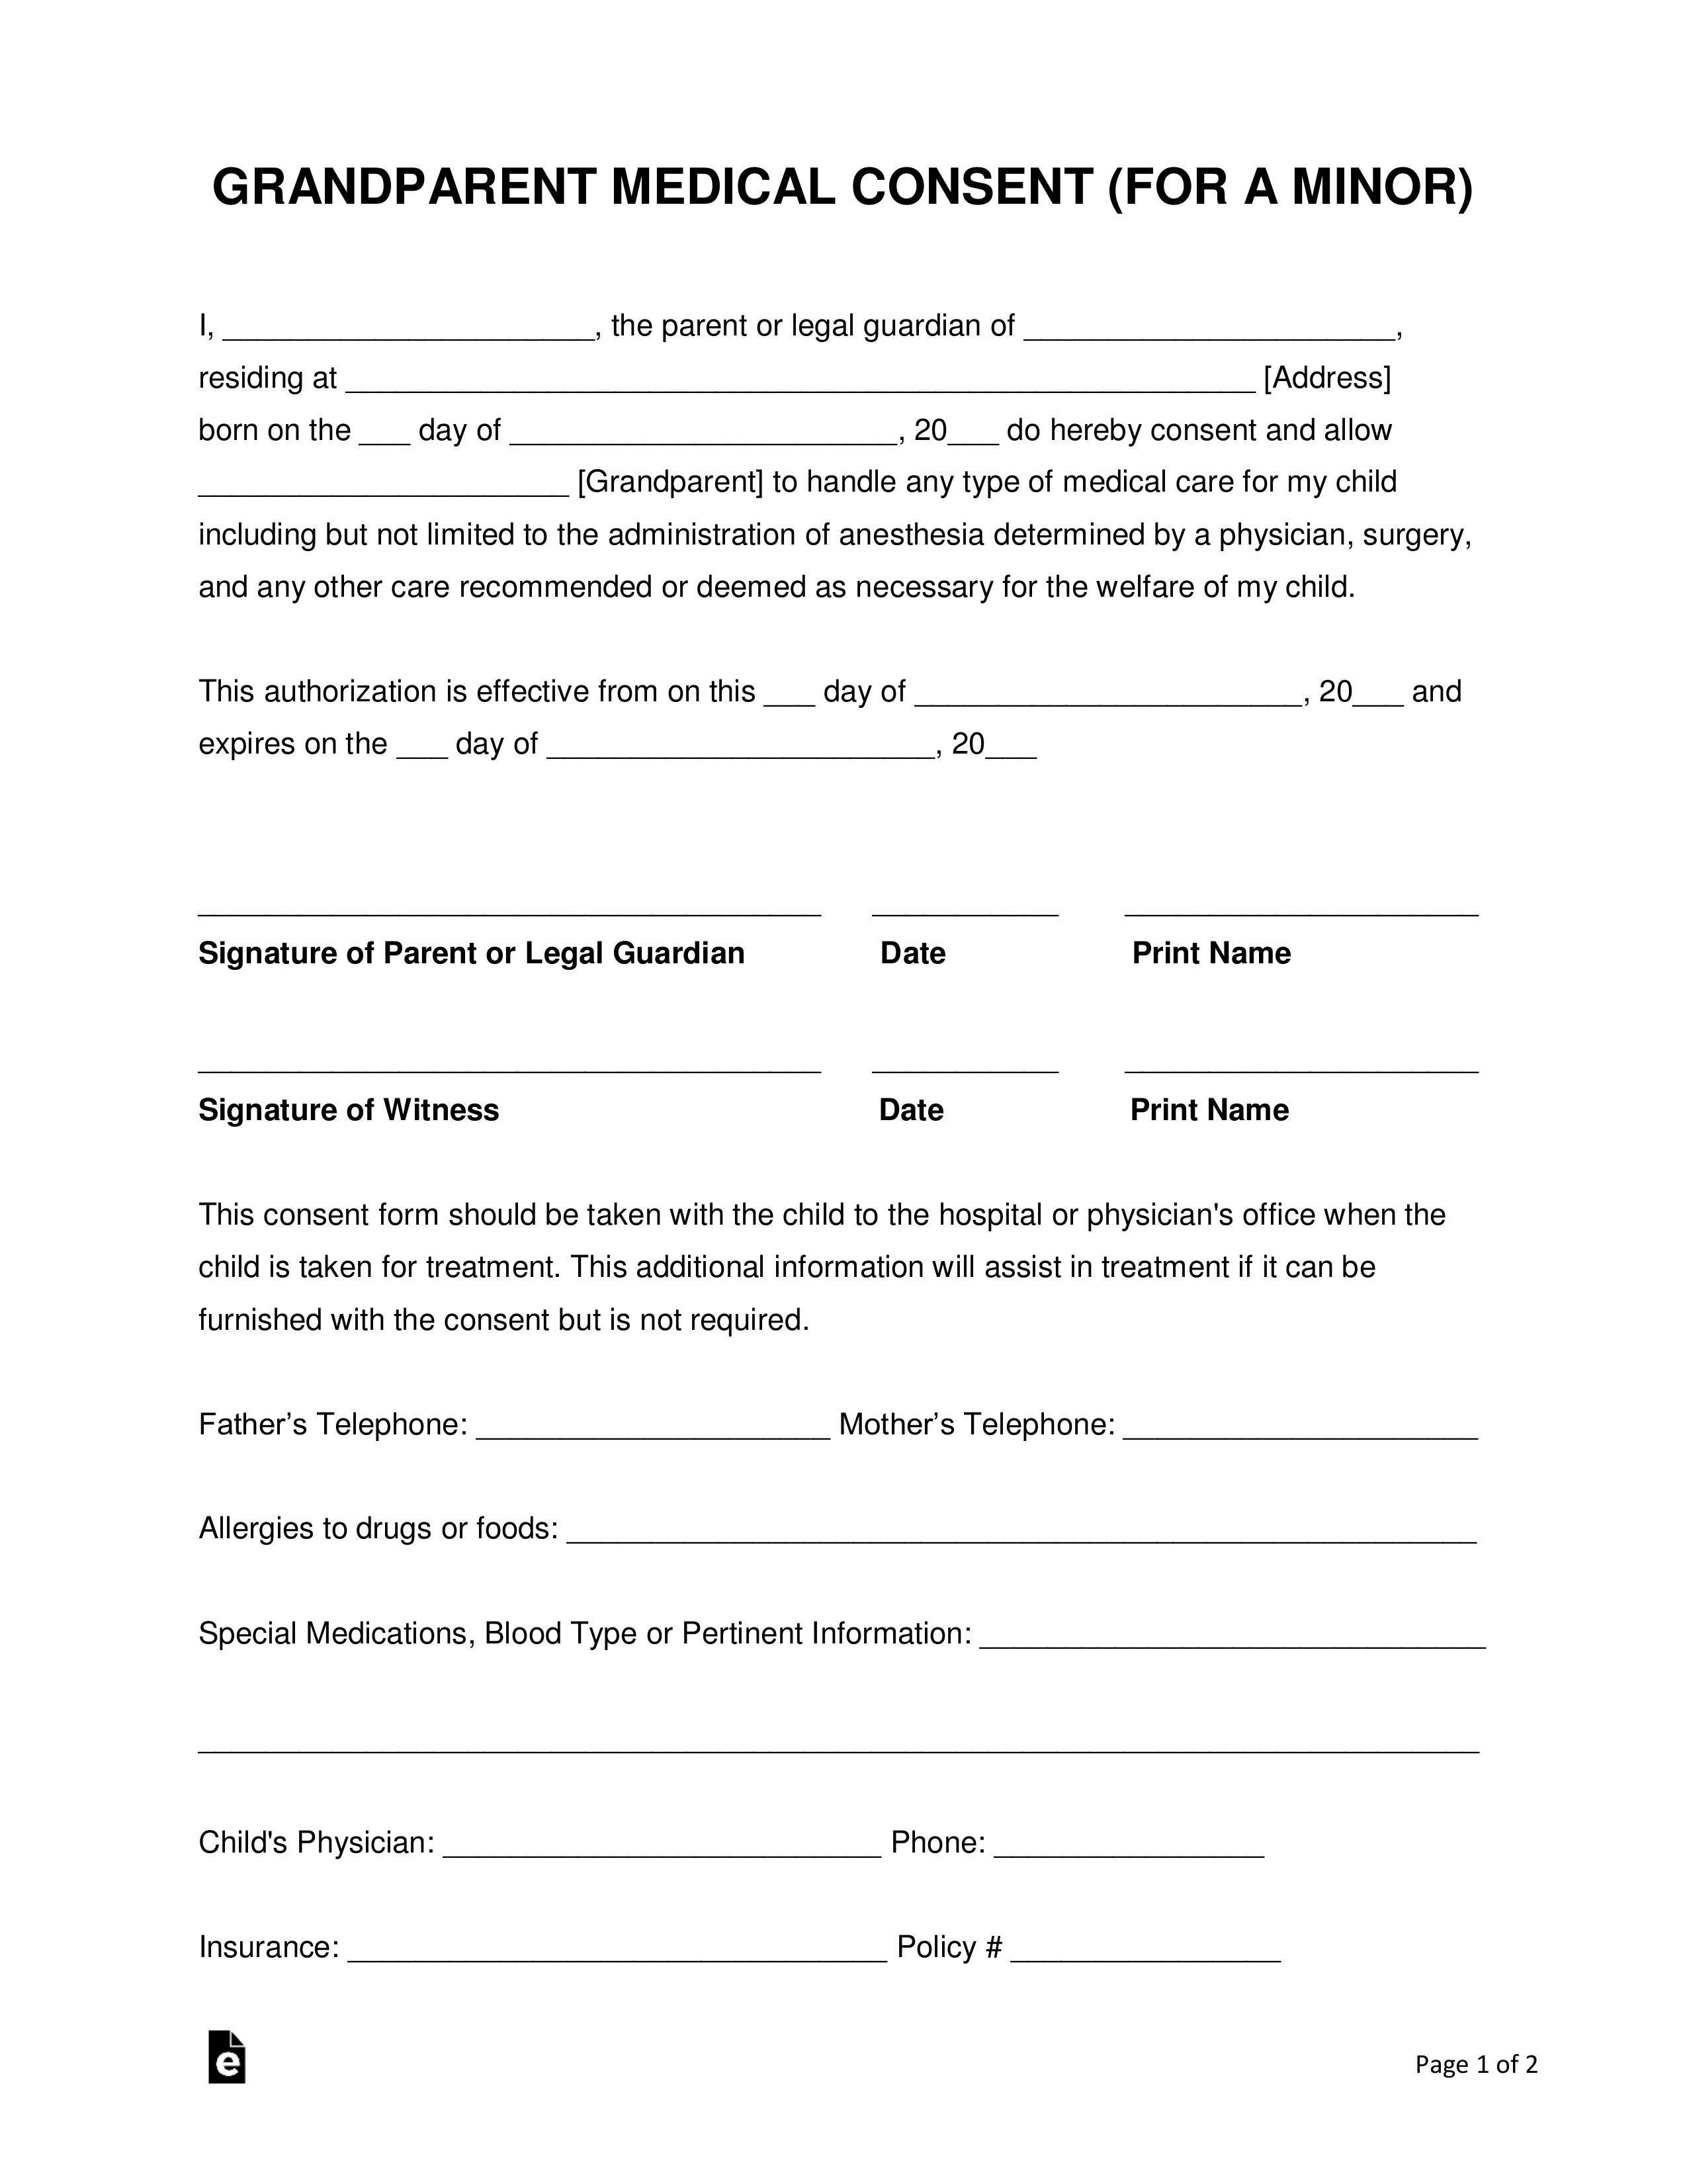 007 Incredible Medical Consent Form Template Sample  Templates FreeFull